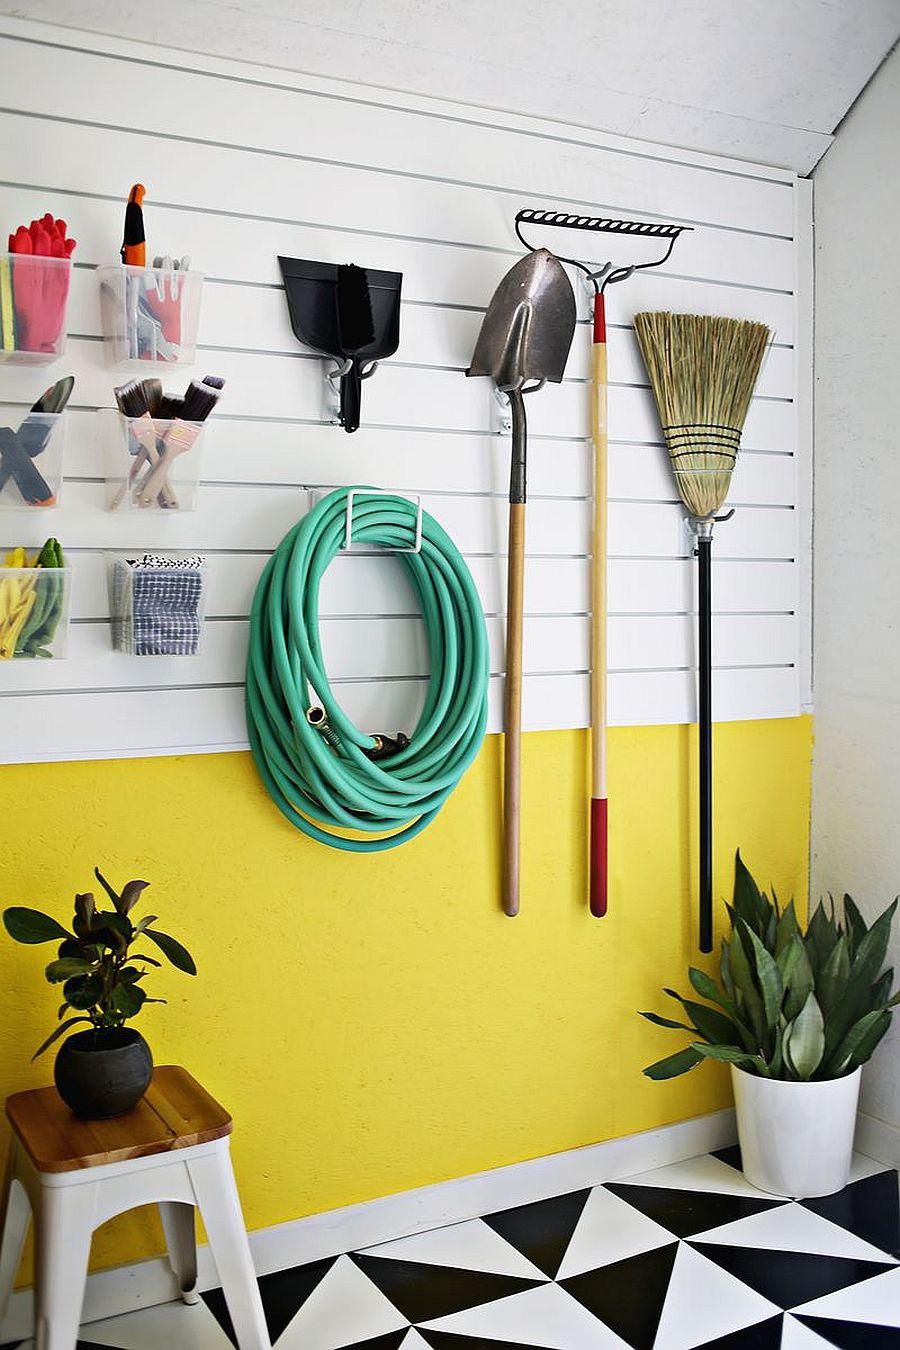 Add a bit of color to the garage organization wall